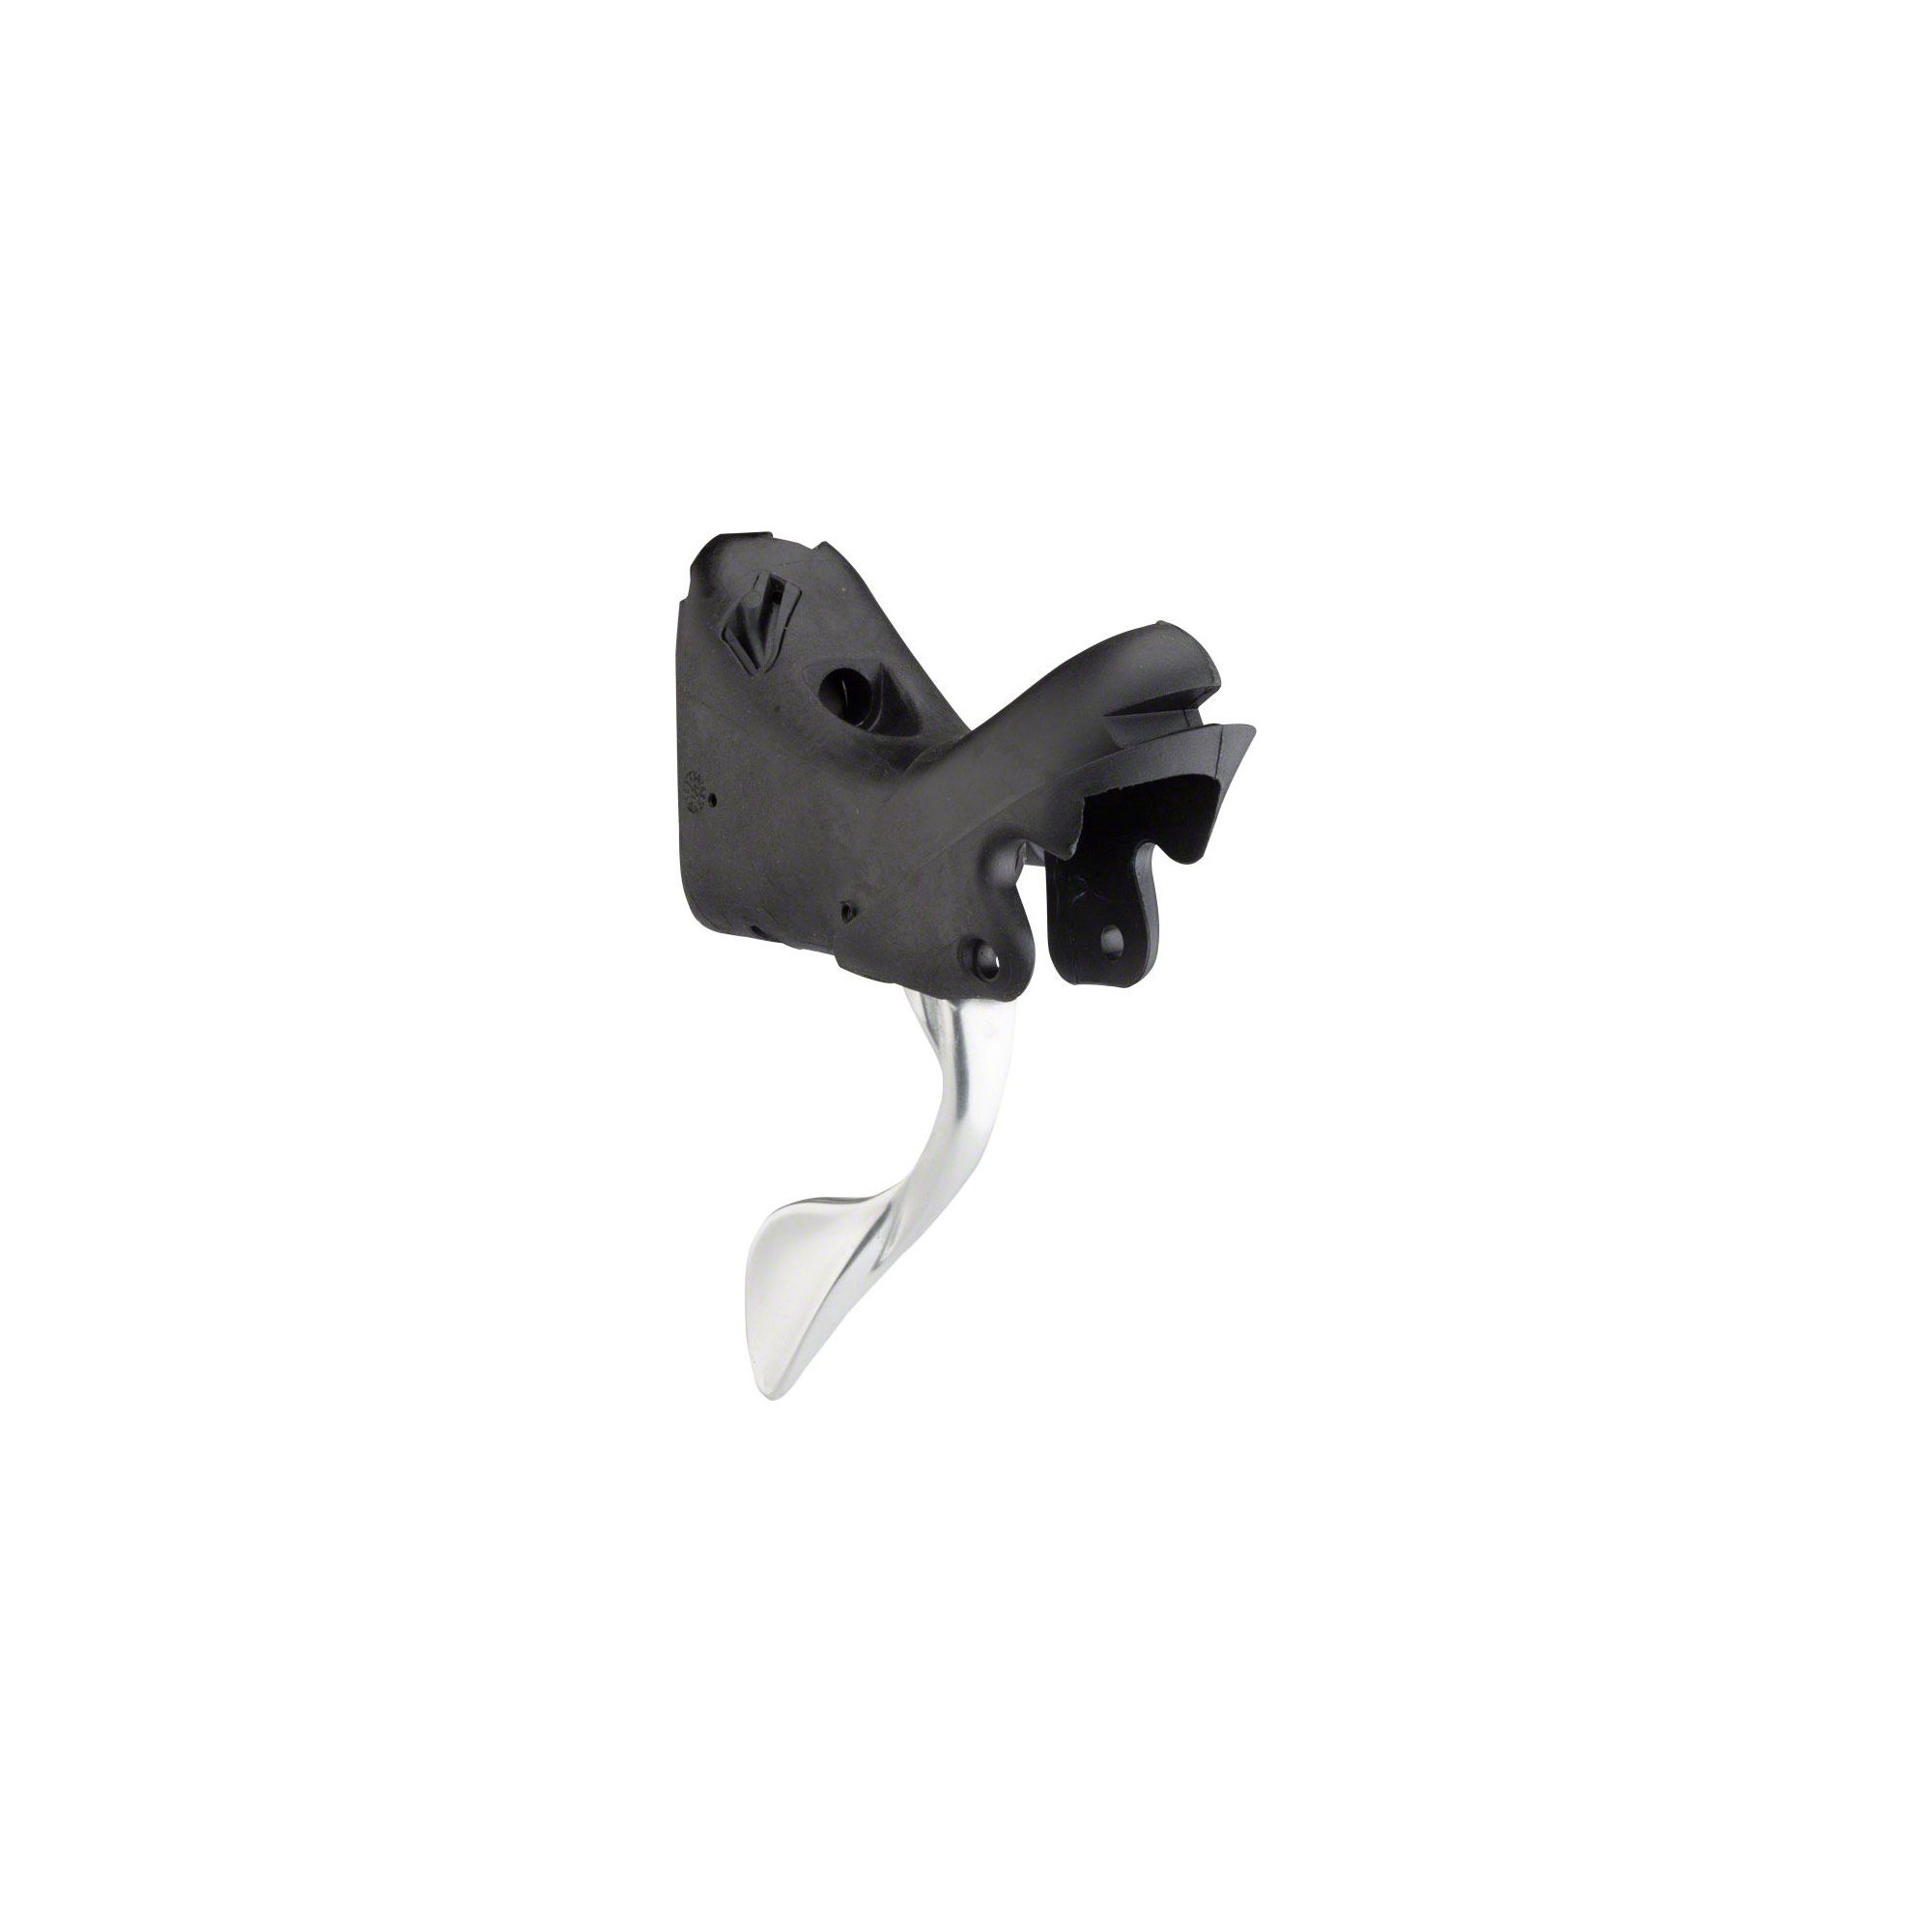 Campagnolo Athena Power-Shift 11s Right Lever Body Assembly 2015 ond